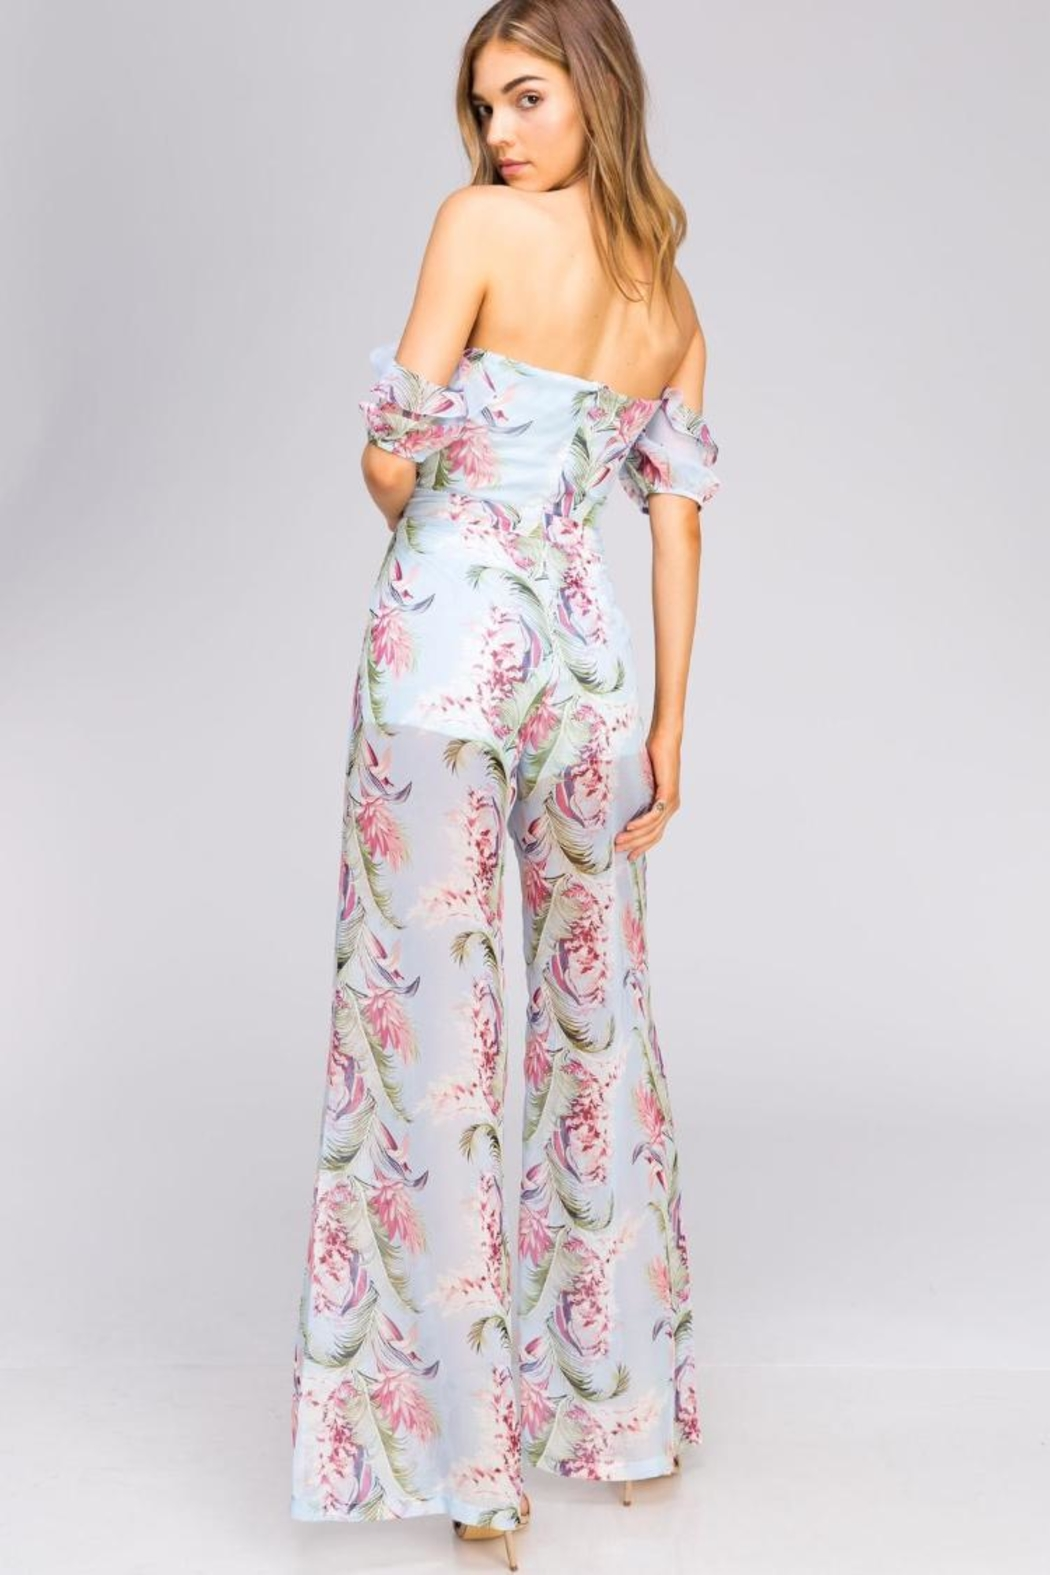 5708a047ed67c Blithe Cold-Shoulder Floral Jumpsuit from Los Angeles by Chikas ...